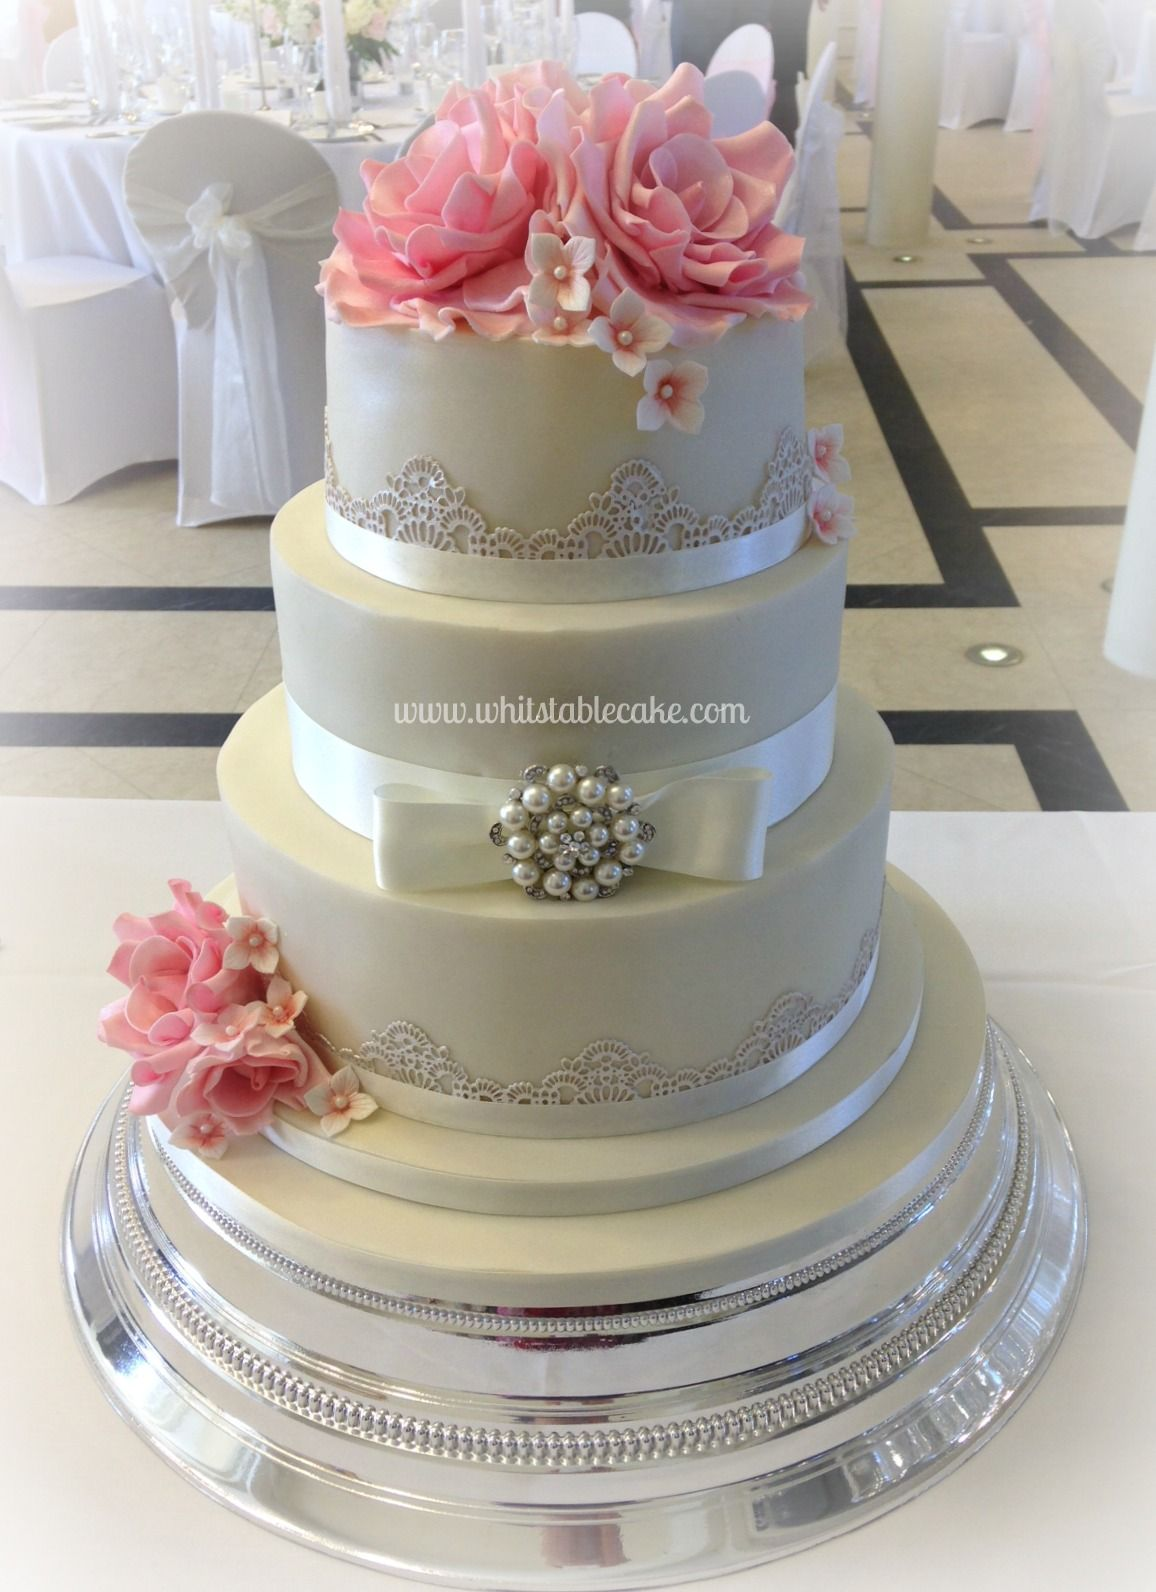 Whitstable Cake Company Cake Makers in Kent Hand crafted